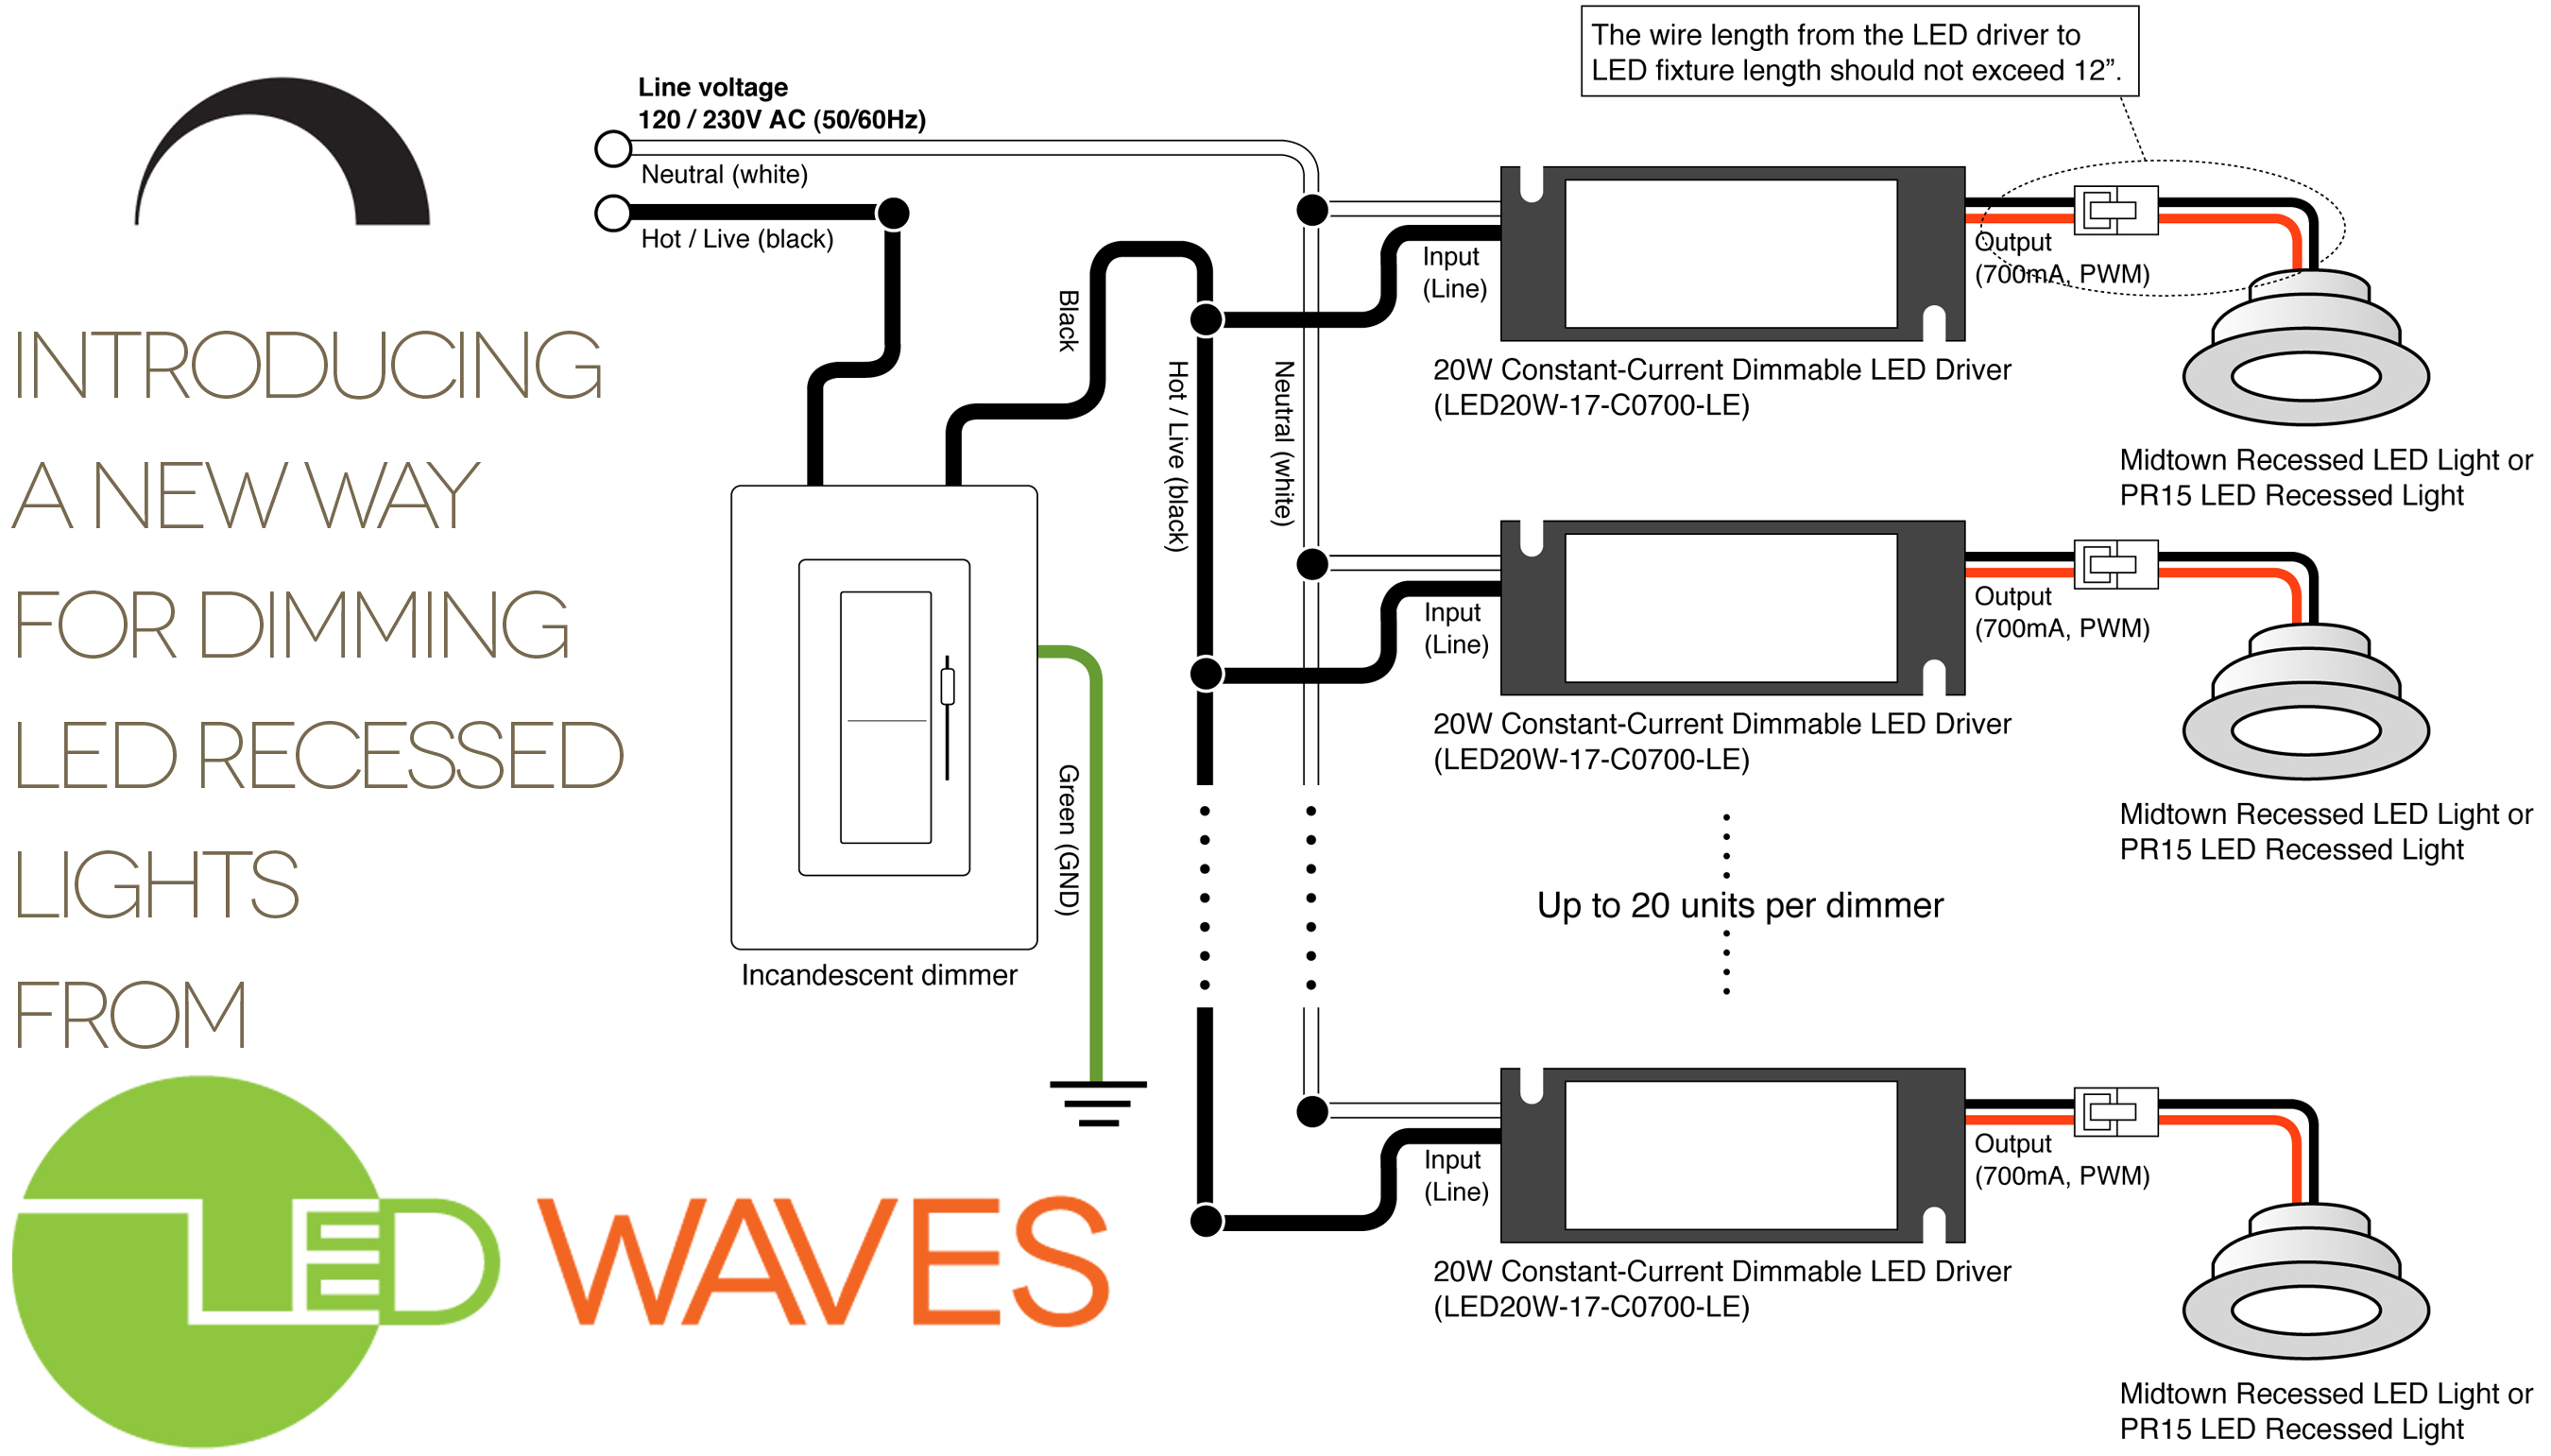 Wiring diagram for dimmable LED Recessed Lights led waves redesigns dimmable led recessed lights electrical wiring diagrams for recessed lighting at mifinder.co